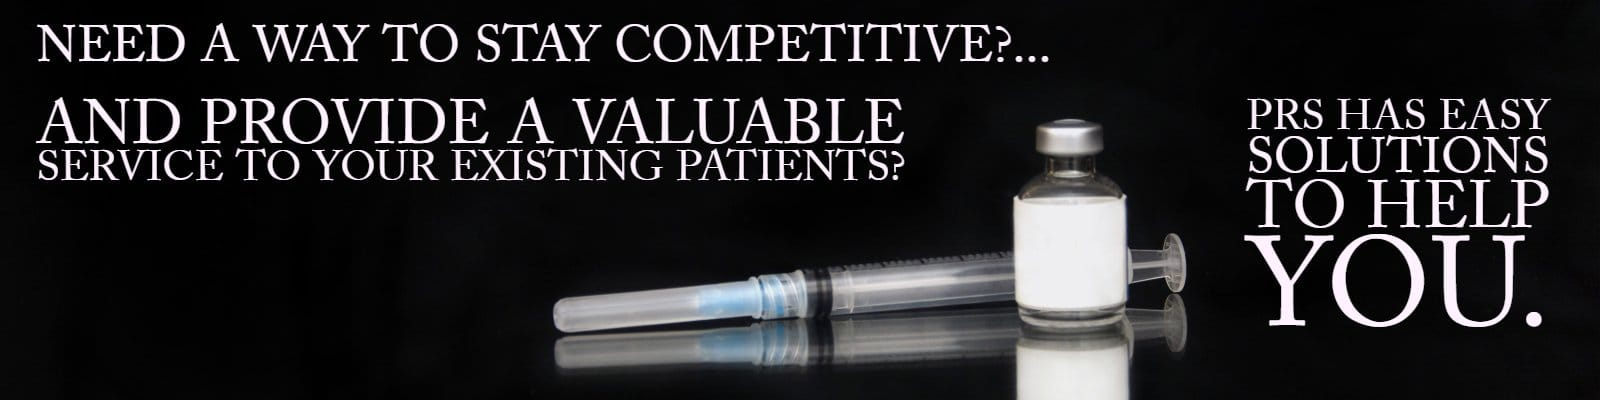 Independent Pharmacy Consulting, Independent Pharmacy Immunization Program, Pharmacy Compliance, Pharmacy Profitability, Pharmacy Revenue Solutions